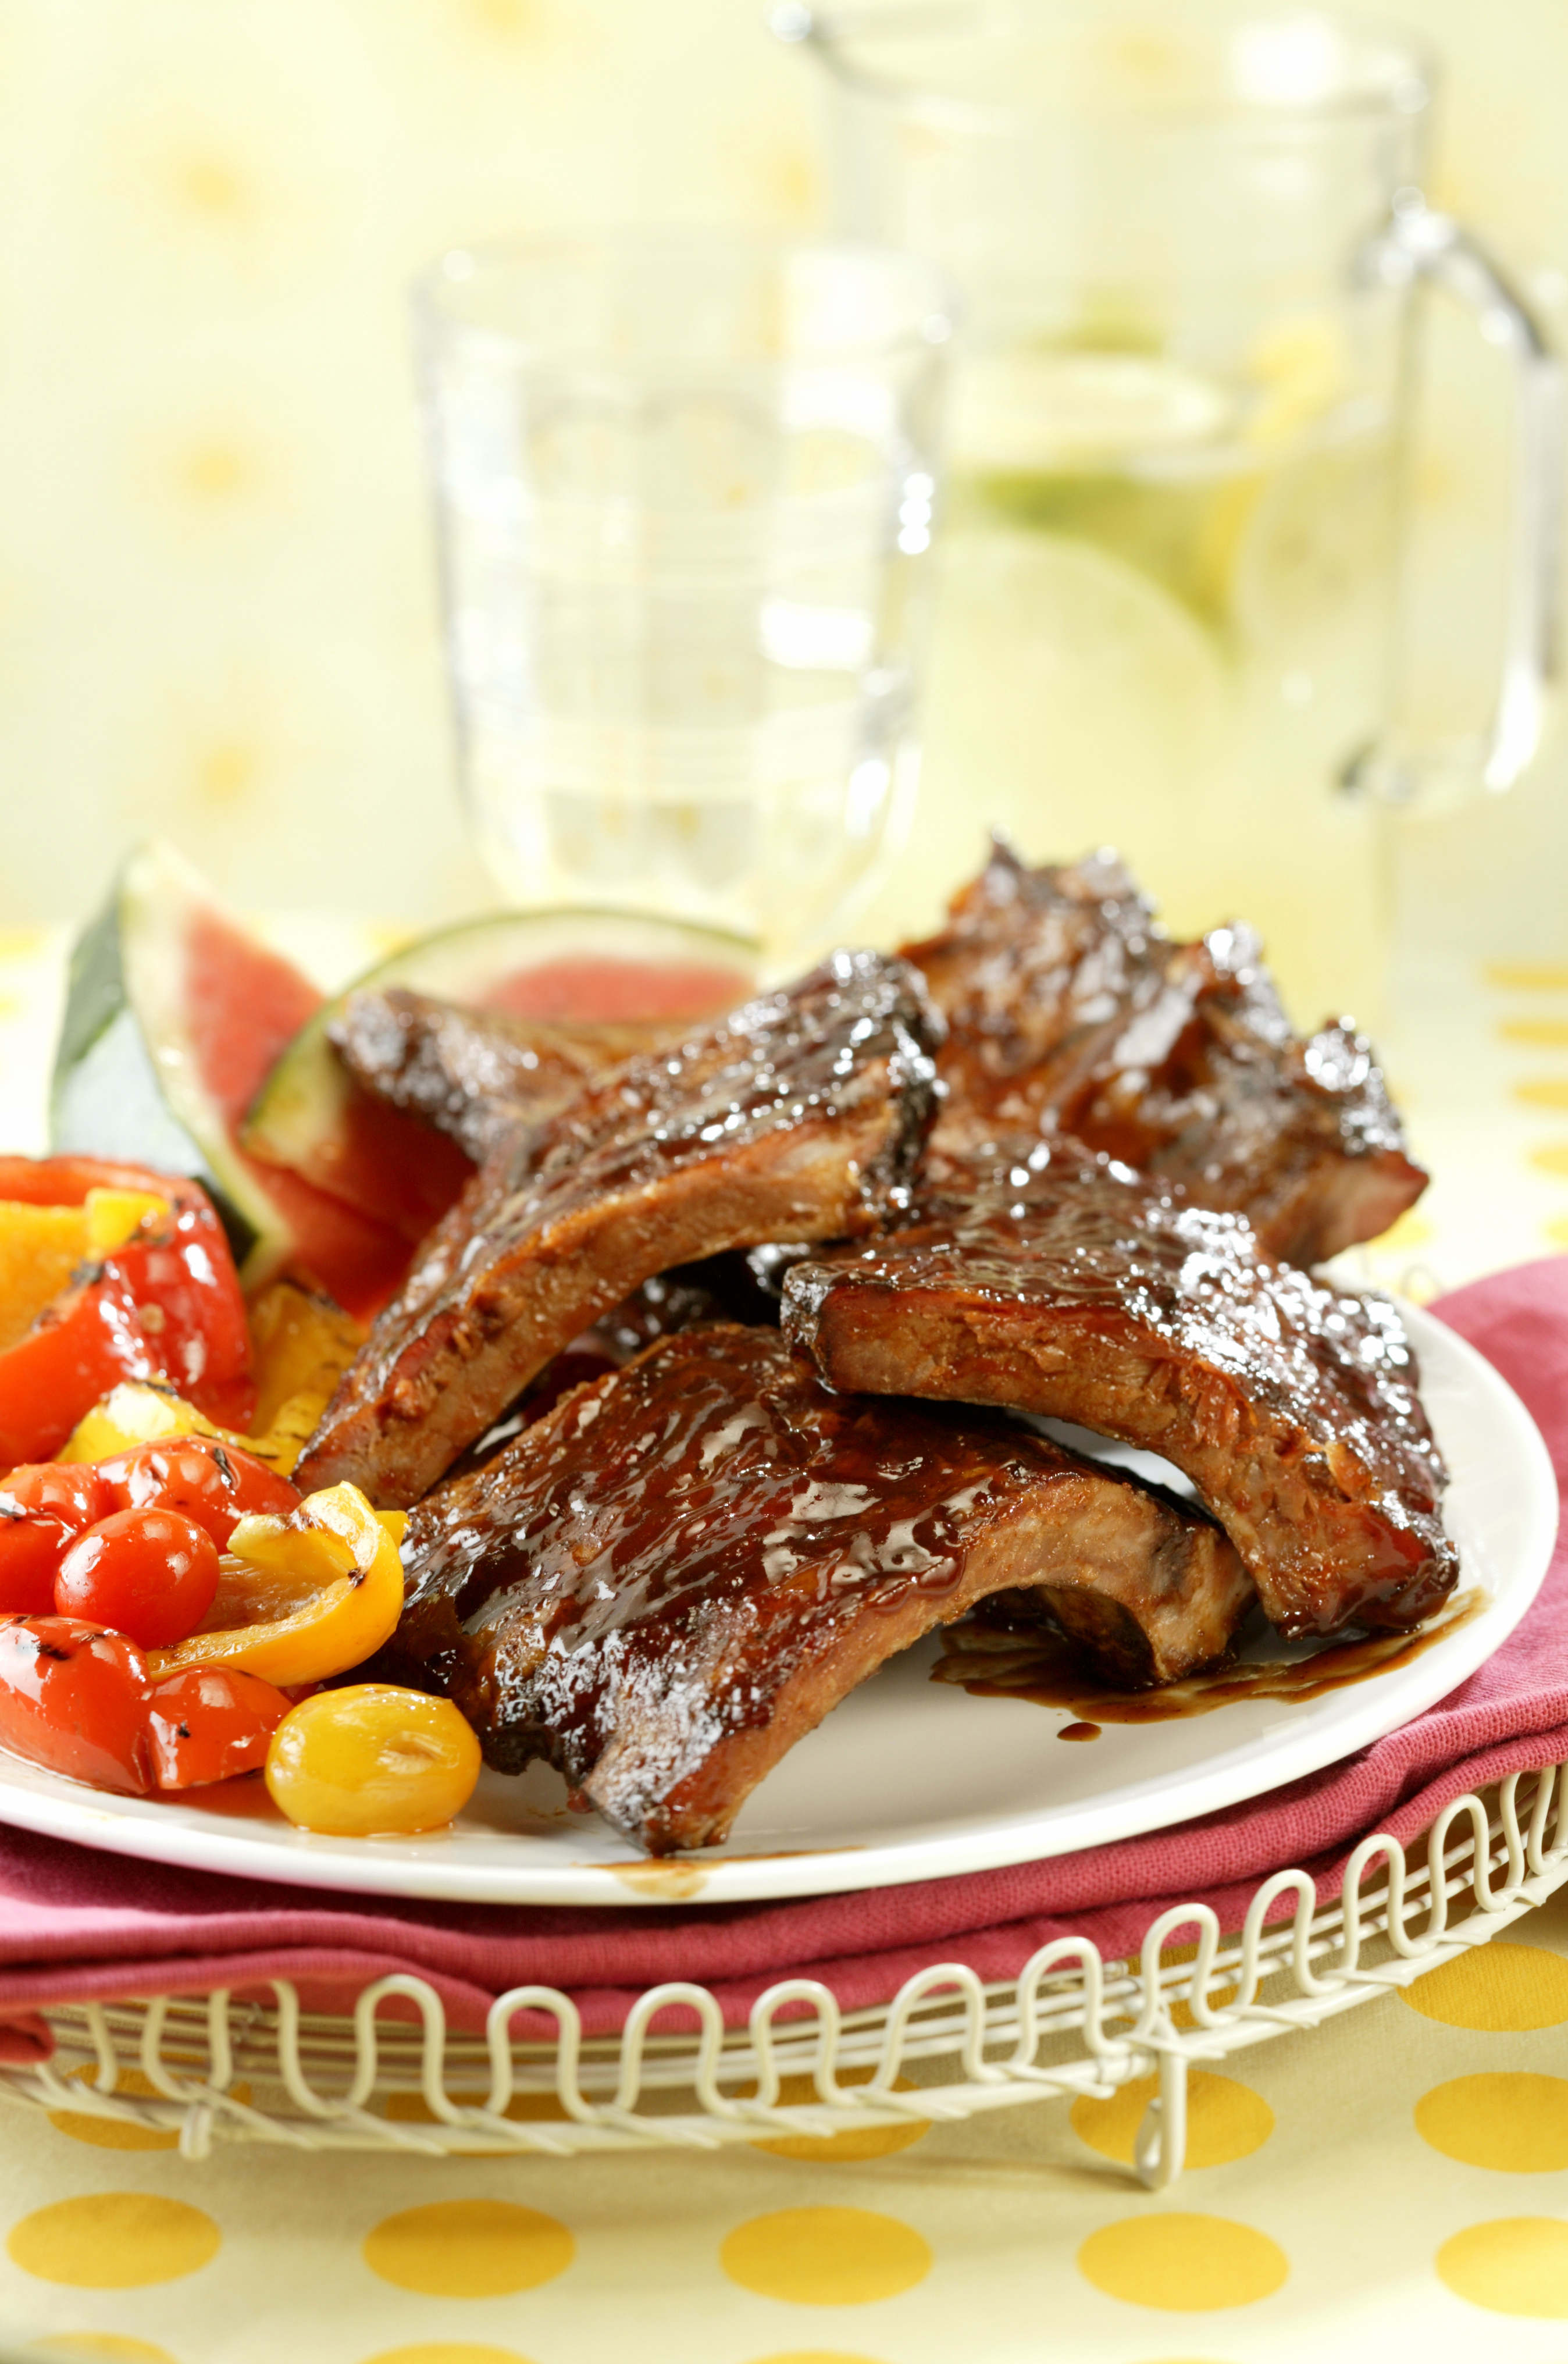 BBQ Baby Back Ribs with Spicy Girls' Dry Rub and Mop Sauce - Pork ...